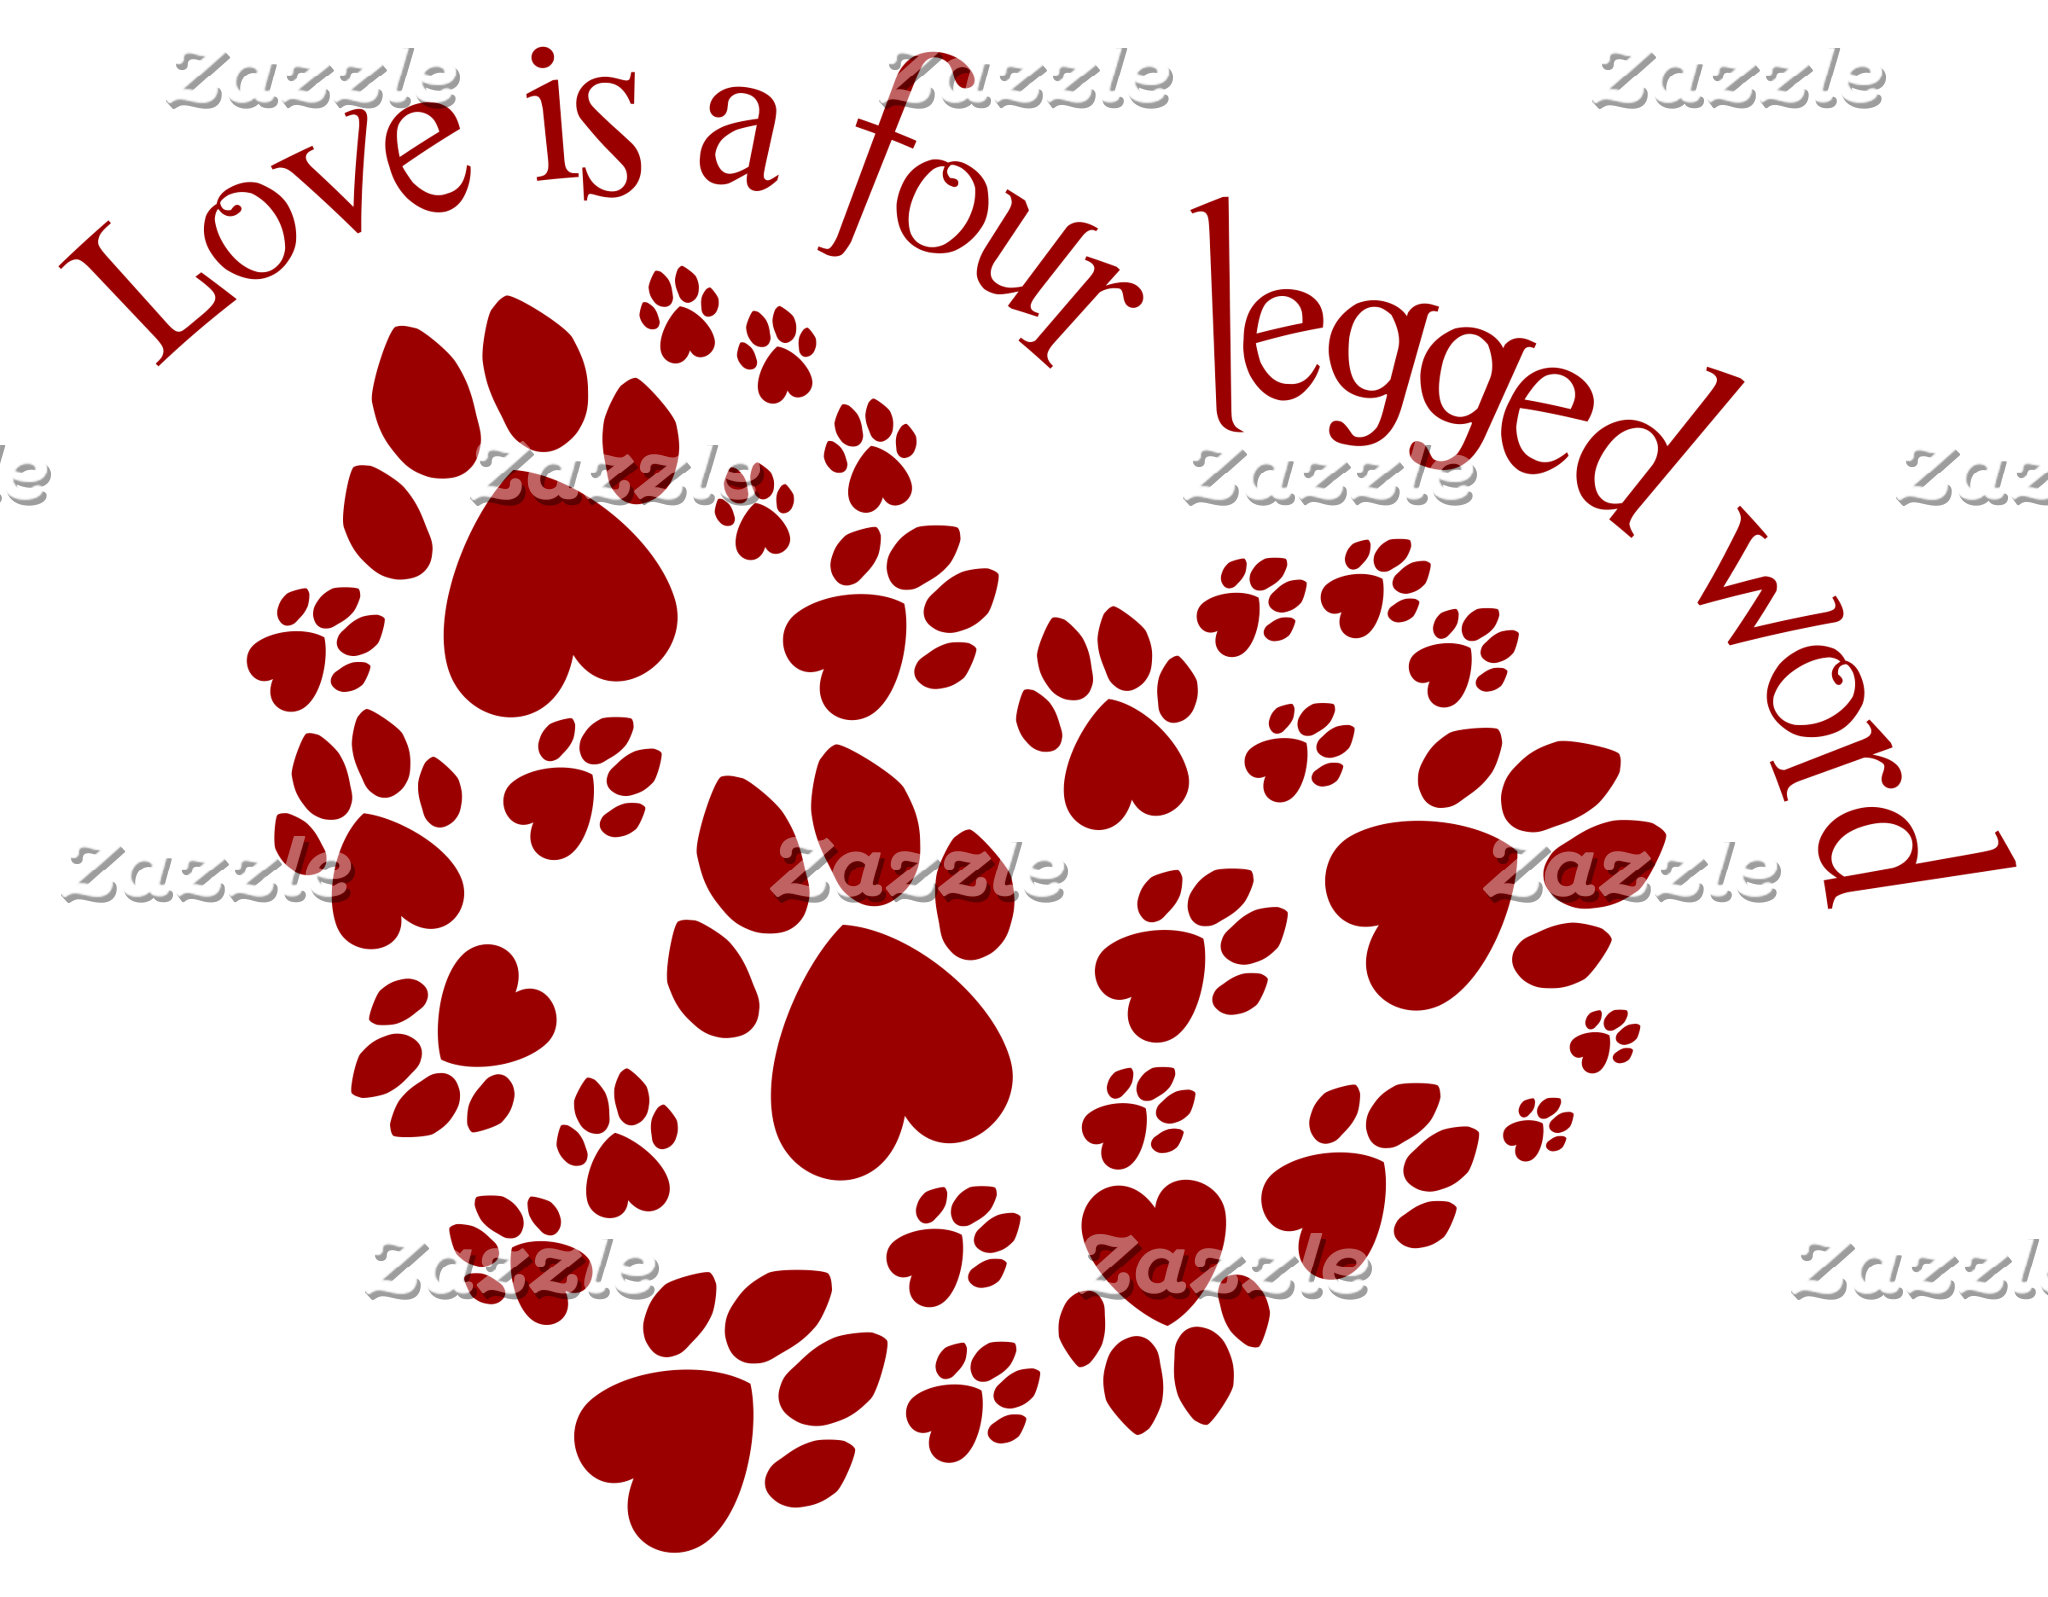 Love is 4 legged